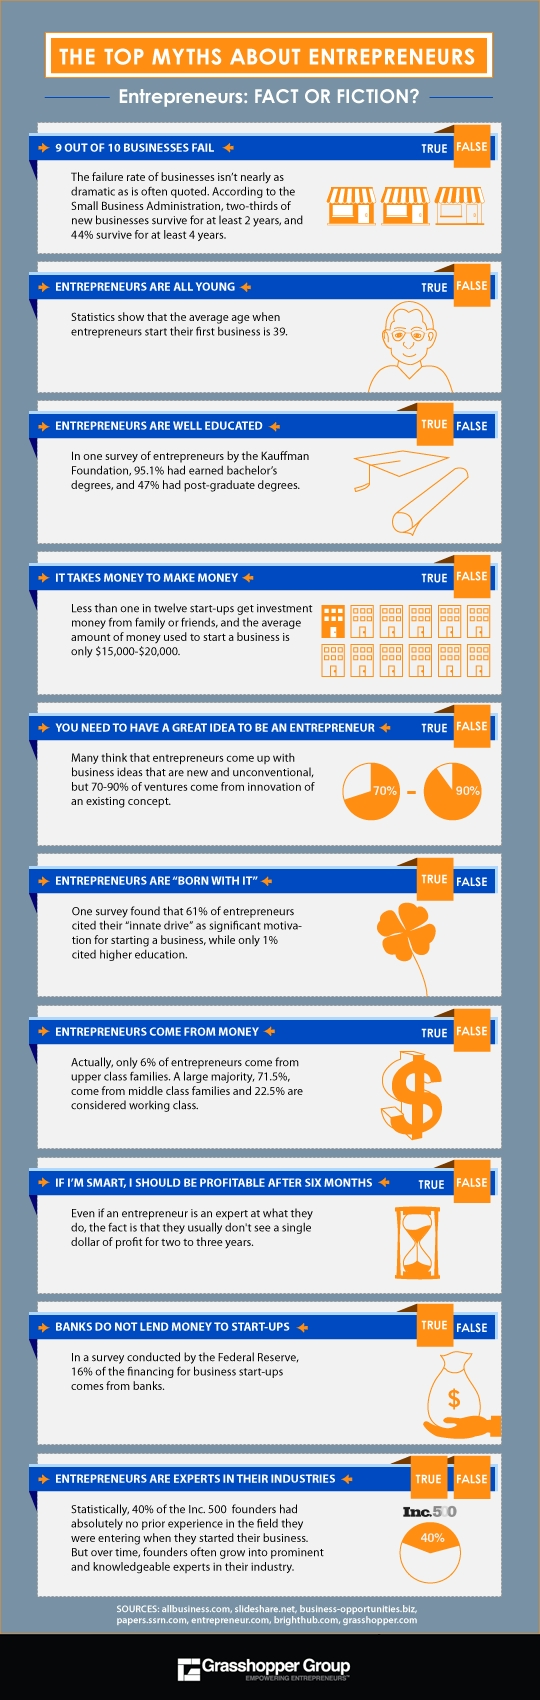 The Top Myths About Entrepreneurs Infographic